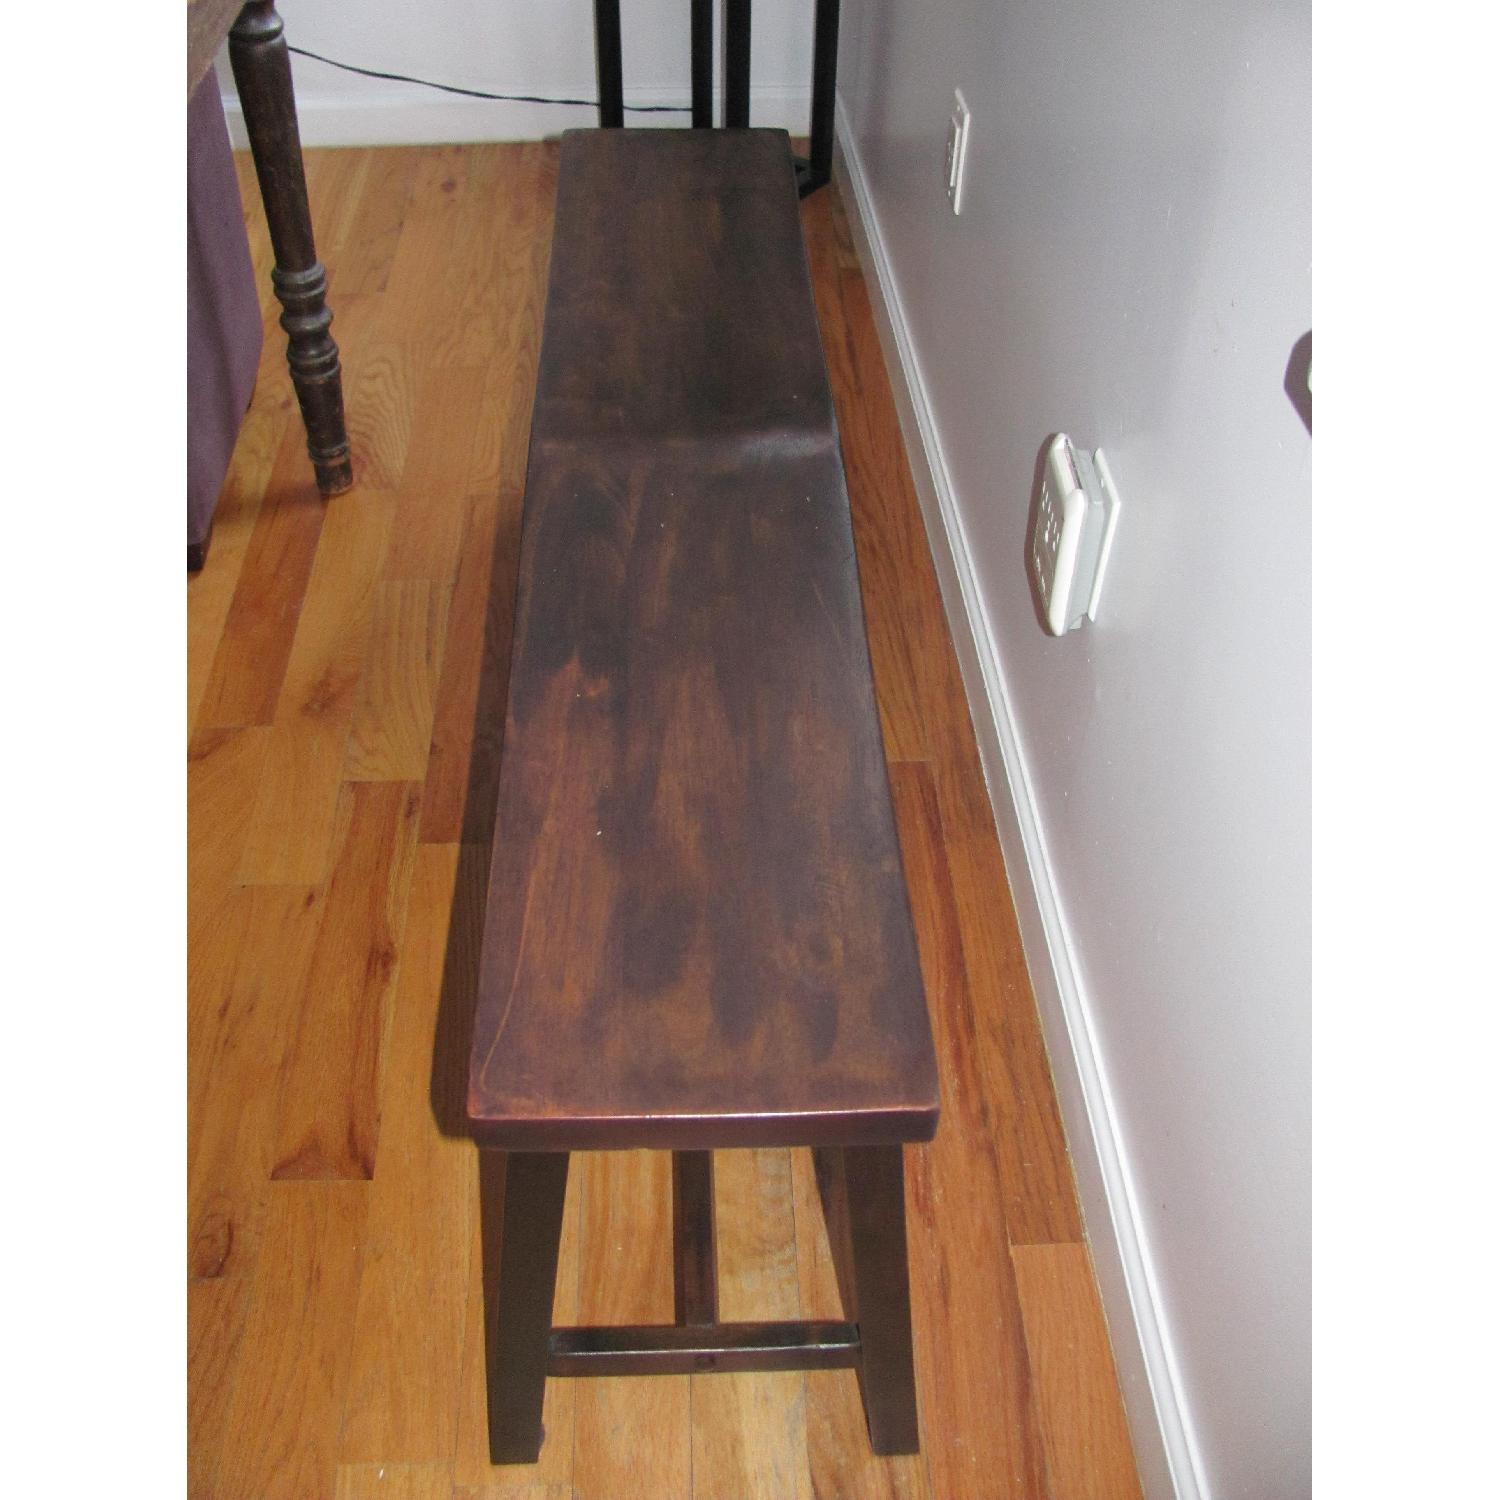 Vintage Wood Dining Table w/ 2 Benches - image-4